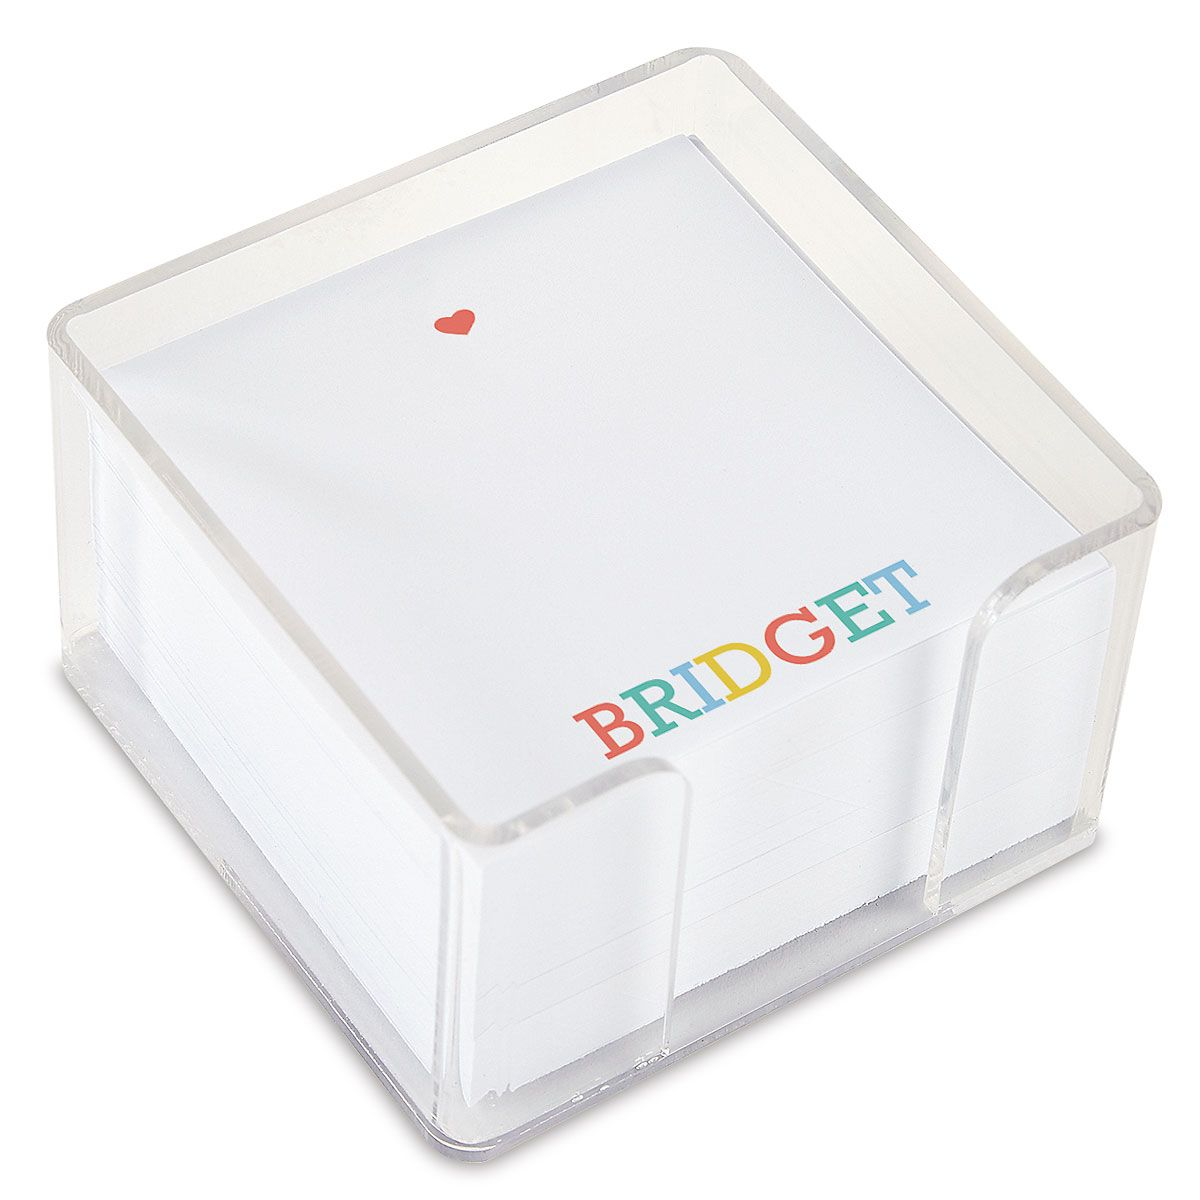 Alphabet Personalized Note Sheets in a Cube